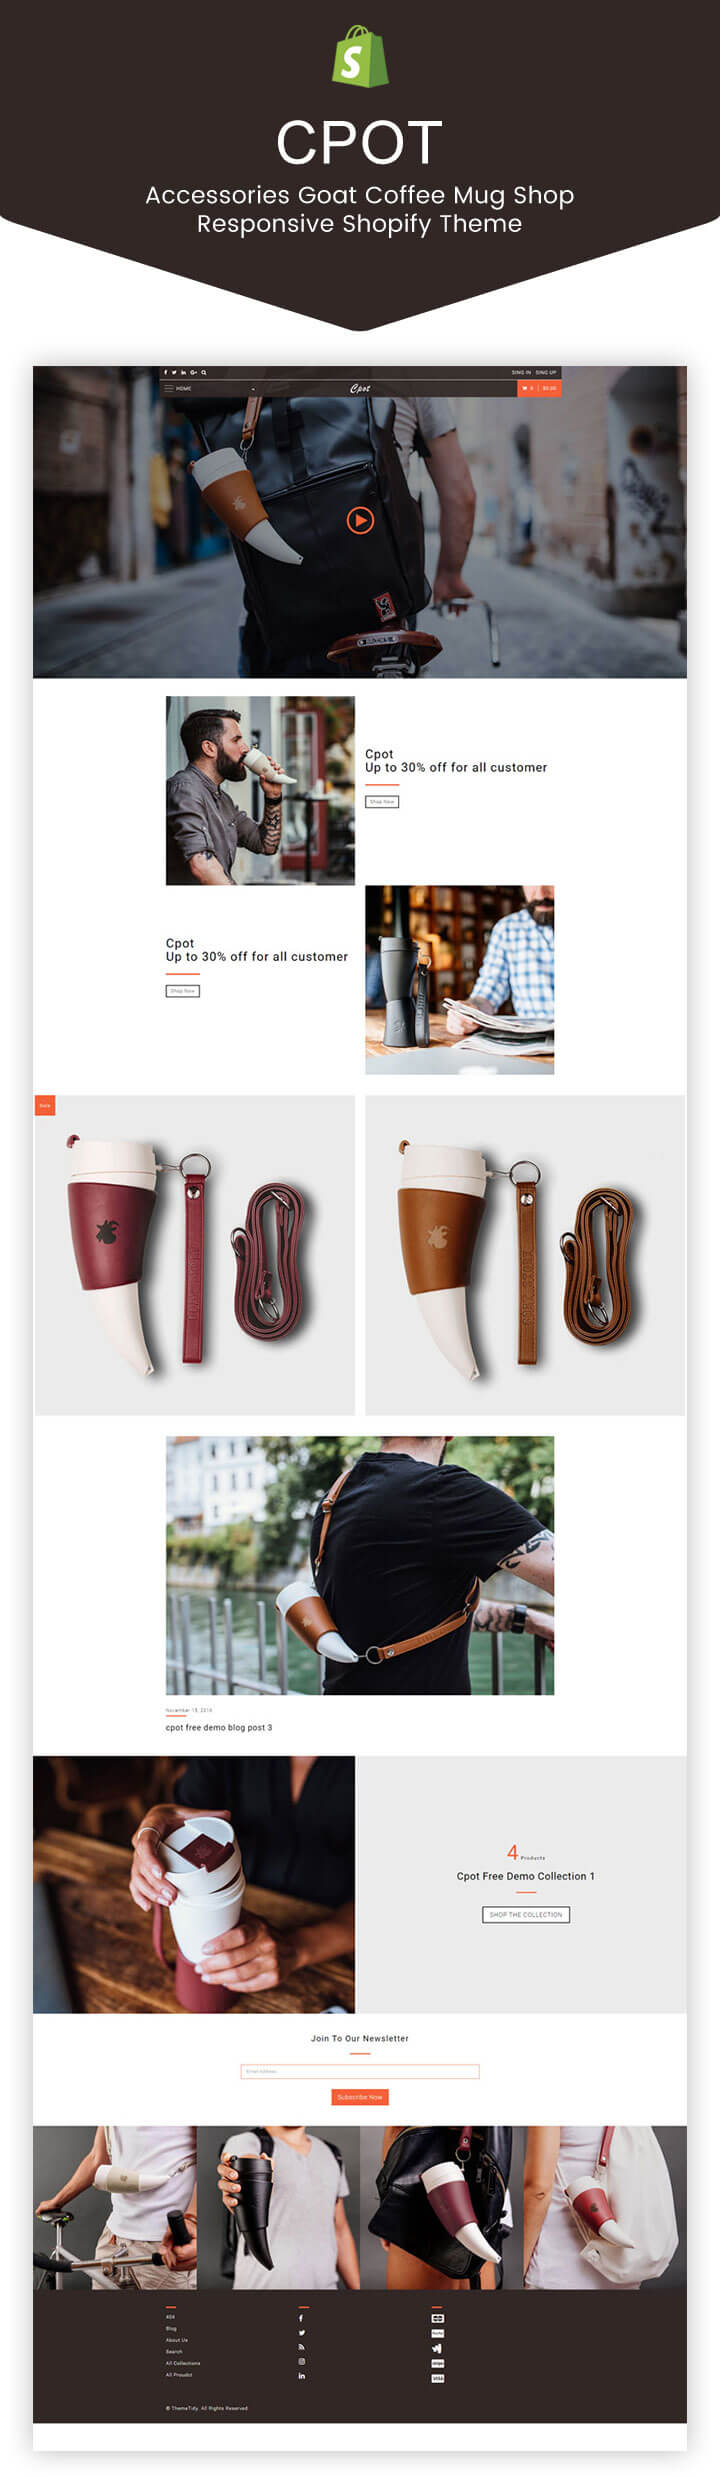 cpot-accessories-goat-coffee-mug-shop-responsive-shopify-theme-long-description-image-themetidy